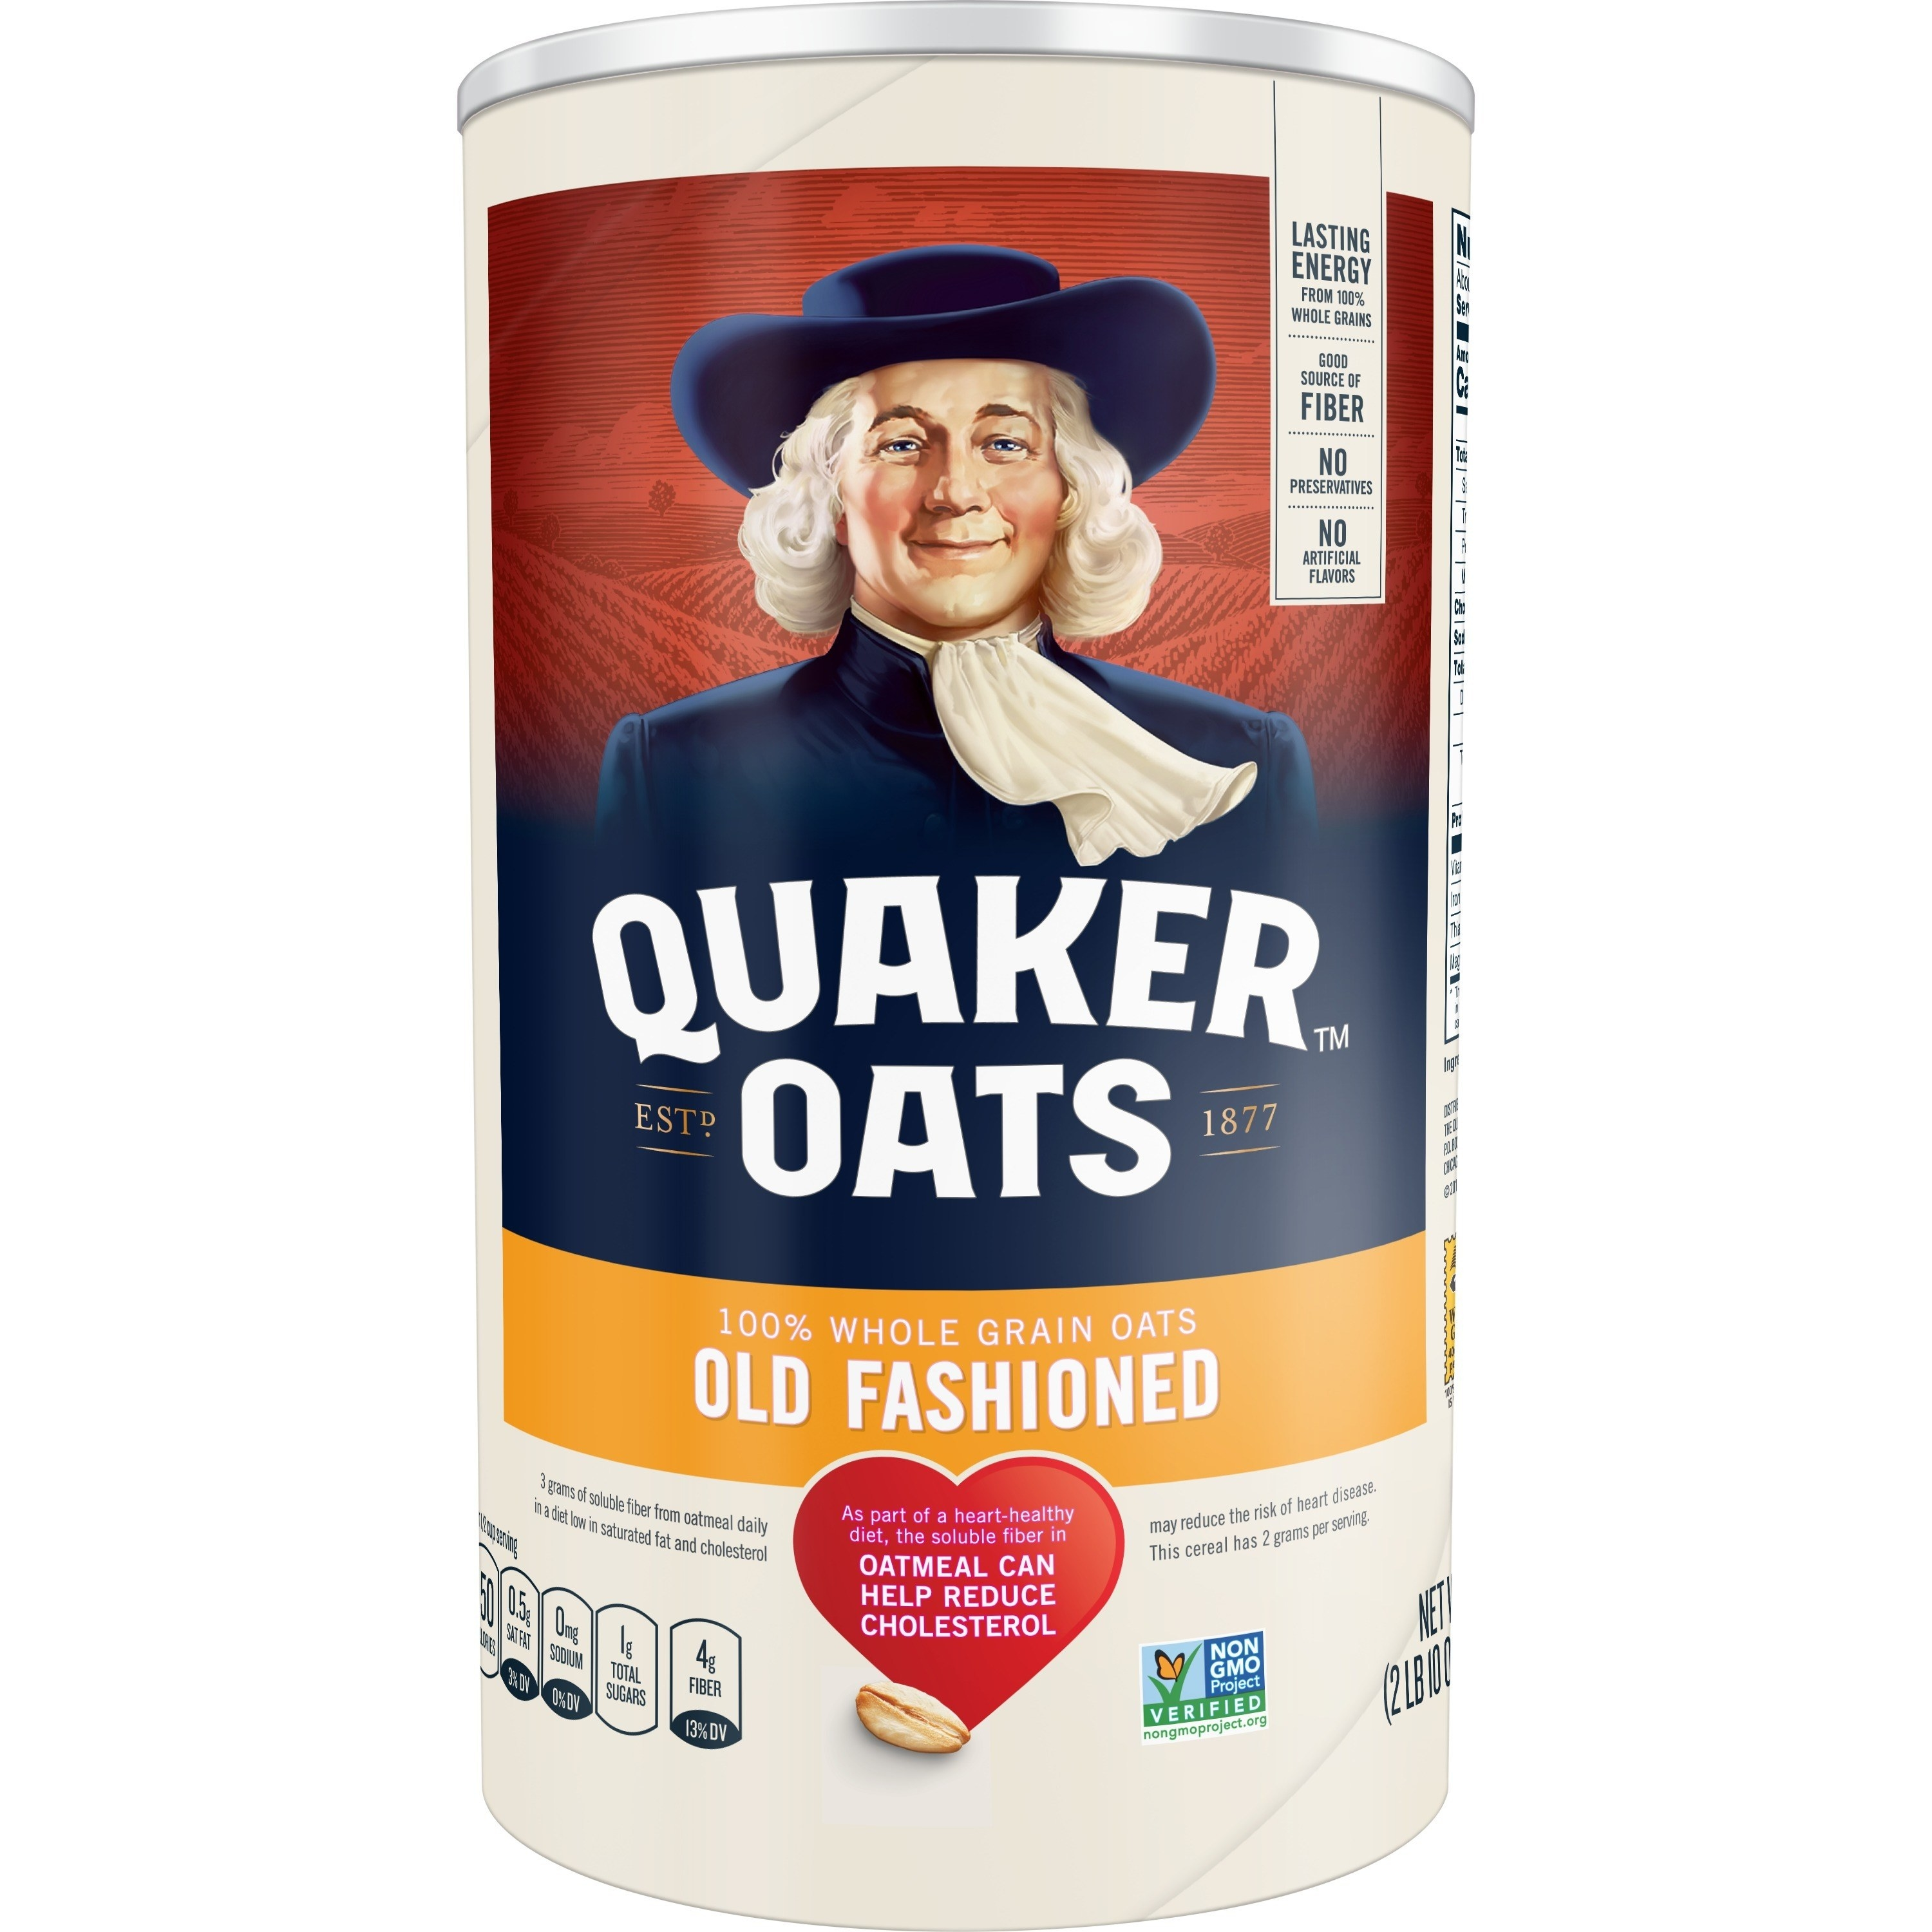 the canister of oats